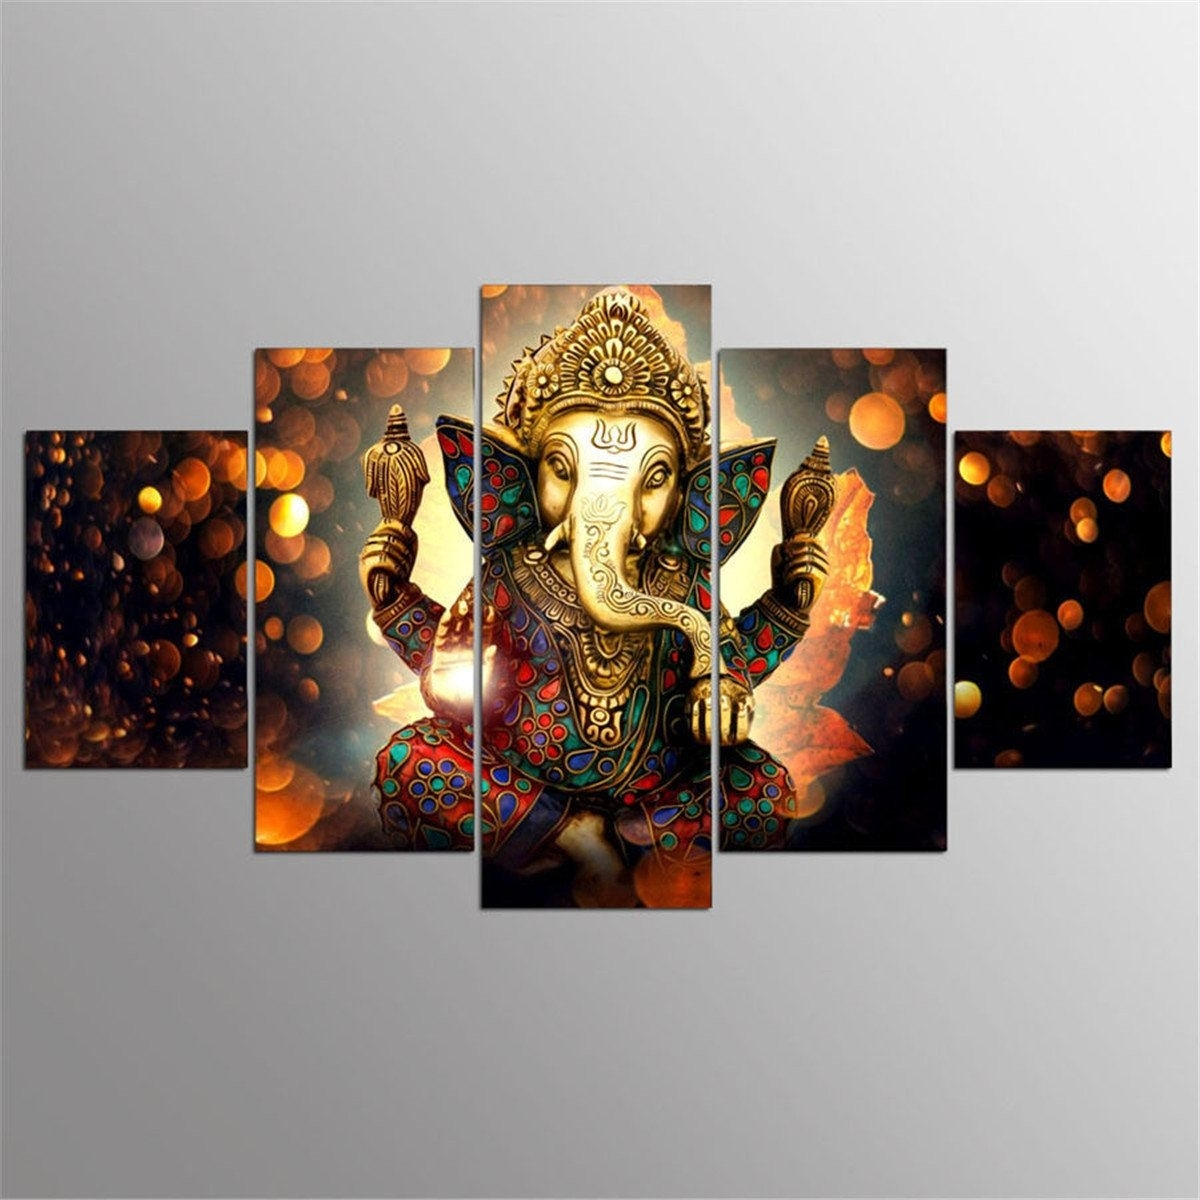 5pcs Ganesha Painting Abstract Print Modern Canvas Wall Art Poster Regarding Newest Abstract Ganesha Wall Art (View 8 of 20)